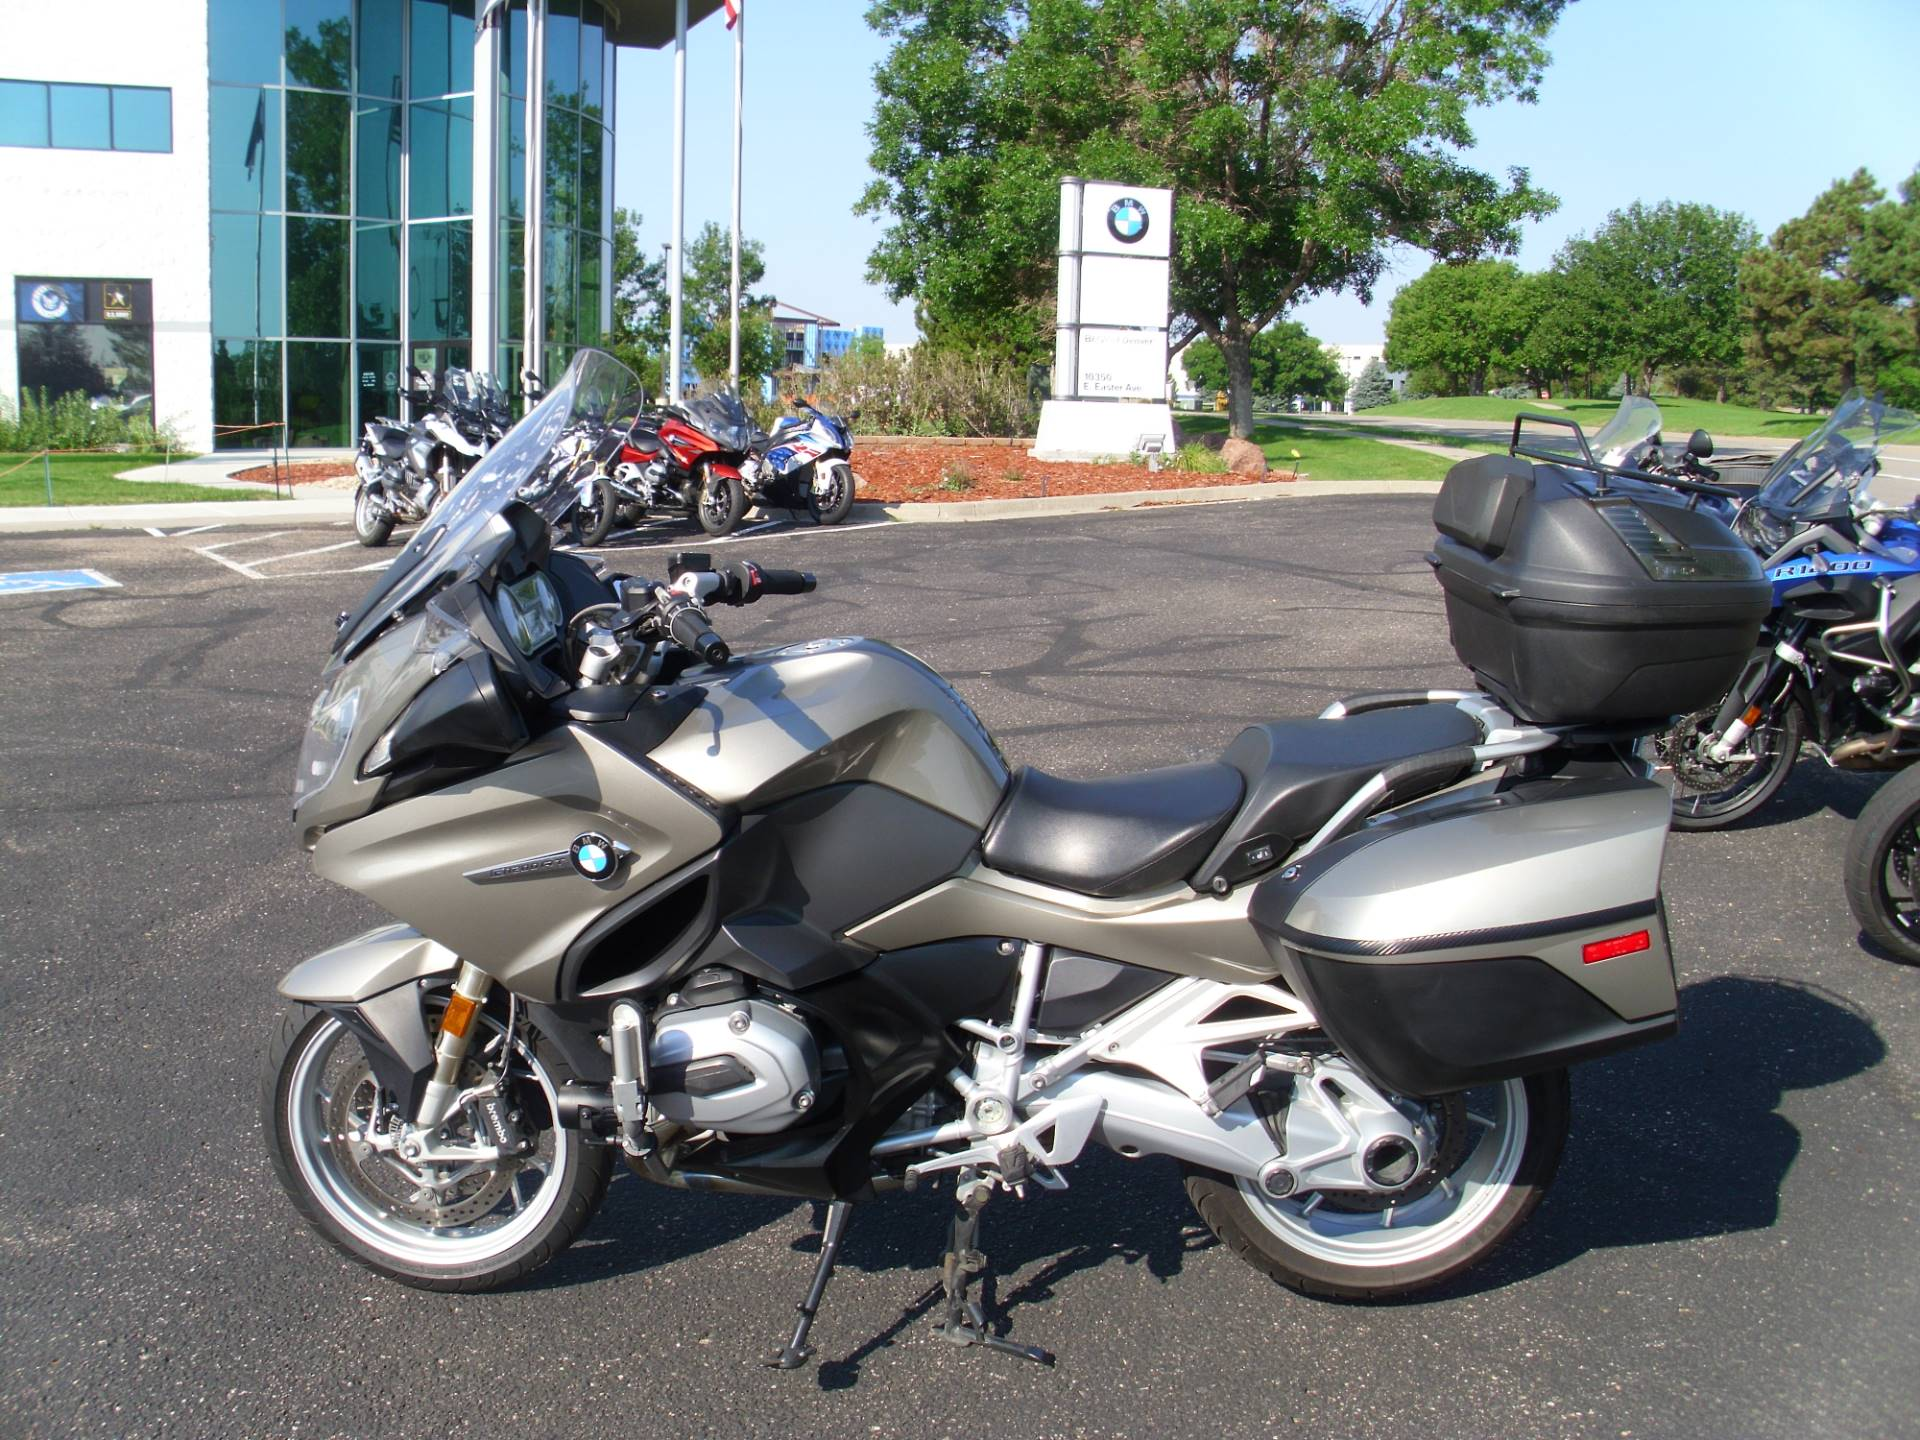 Used 2016 BMW R 1200 RT Motorcycles in Centennial, CO